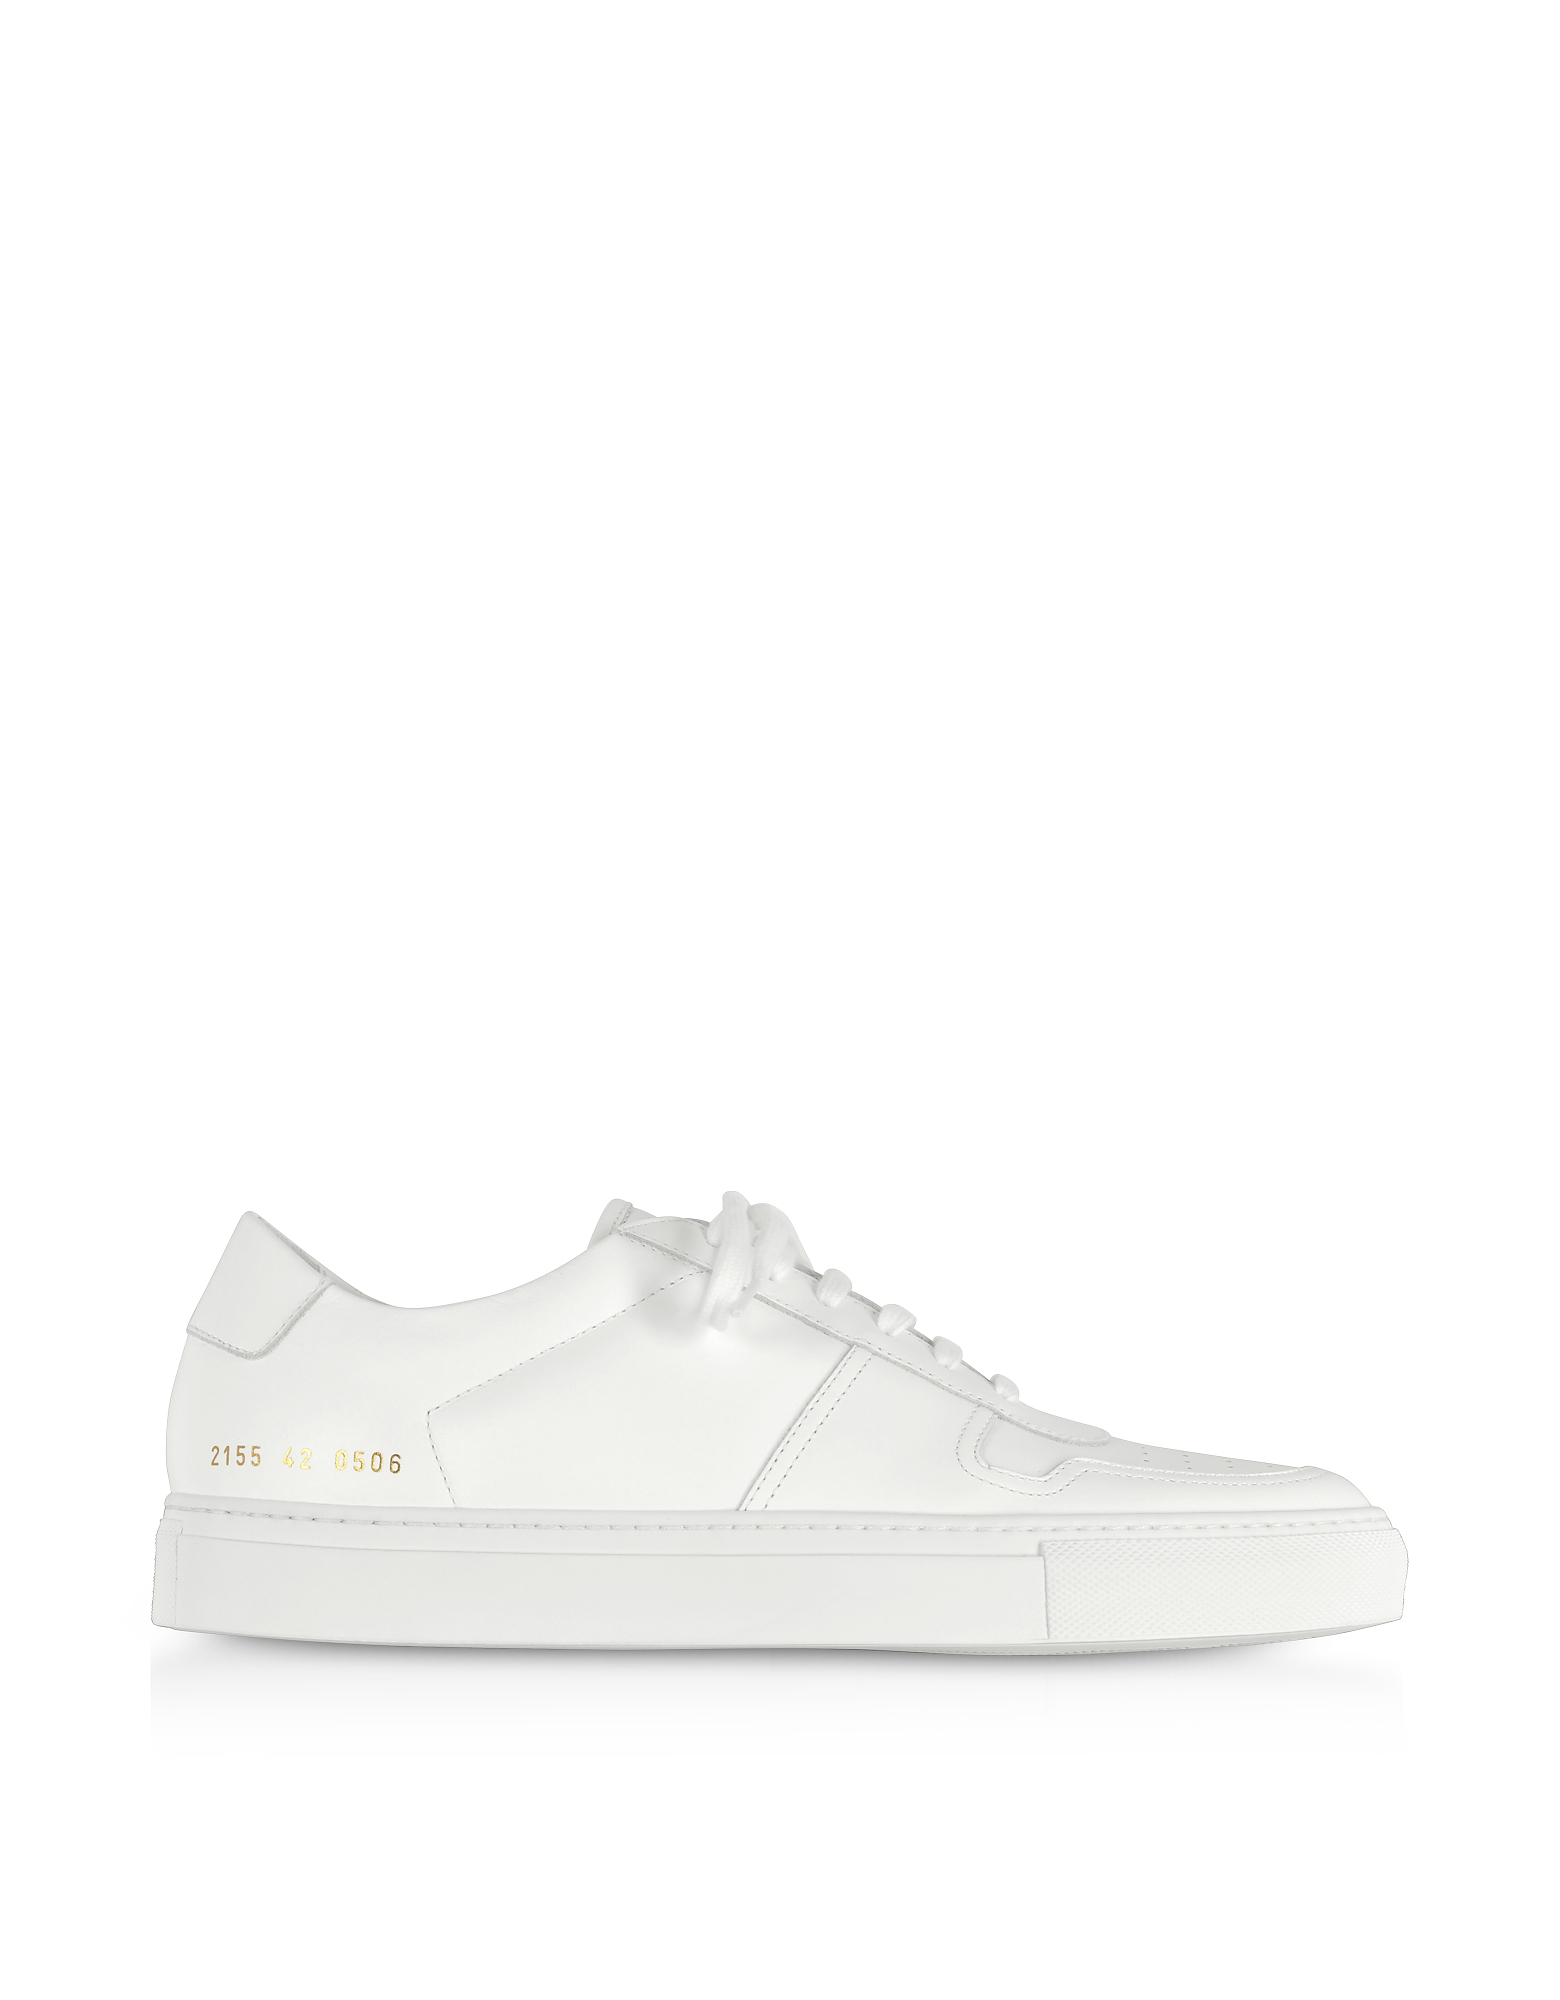 Bball Low White Leather Women's Sneakers